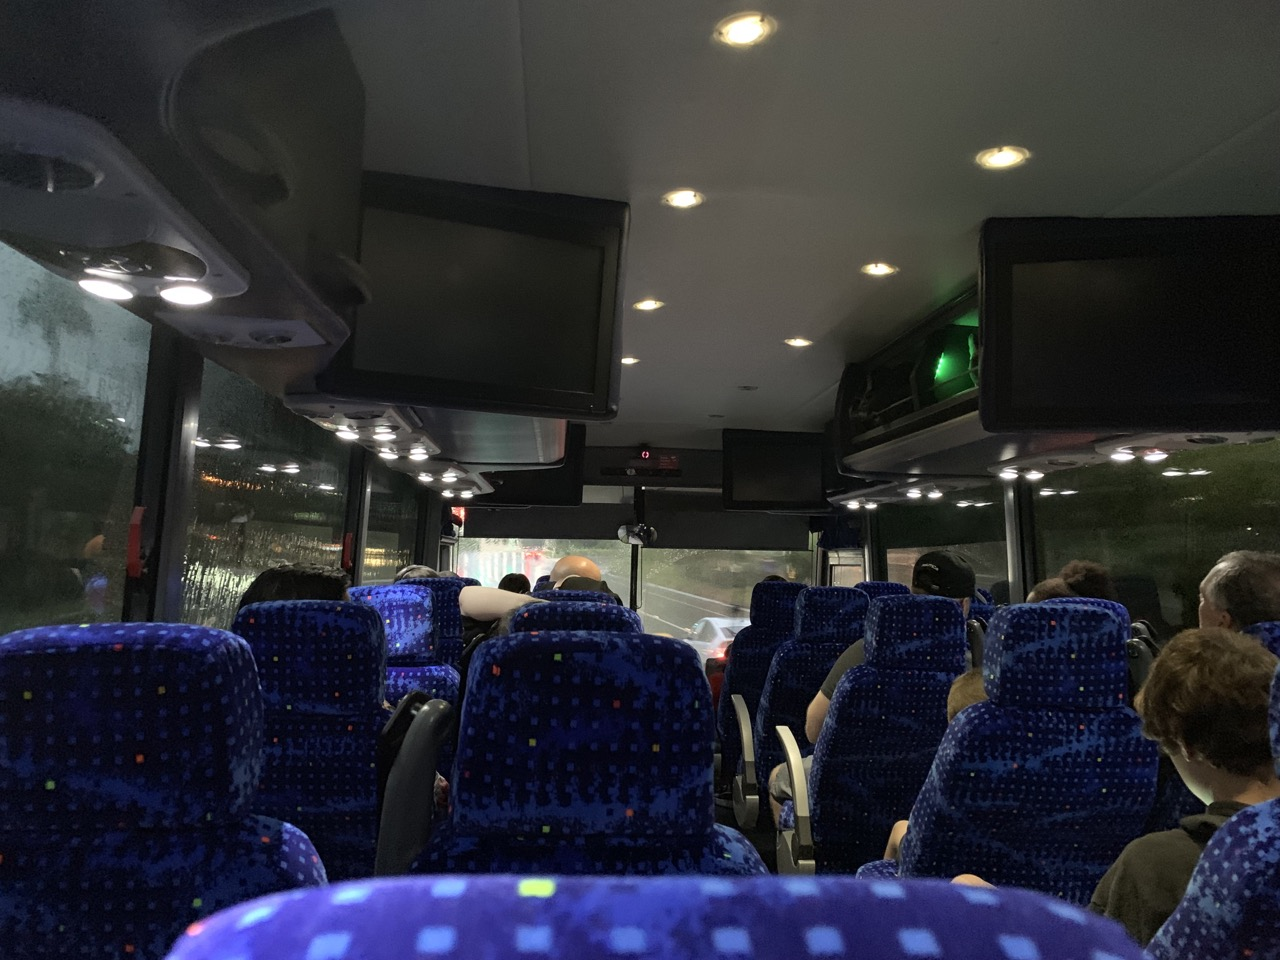 universal orlando summer 2019 trip report part 2 mears bus.jpeg